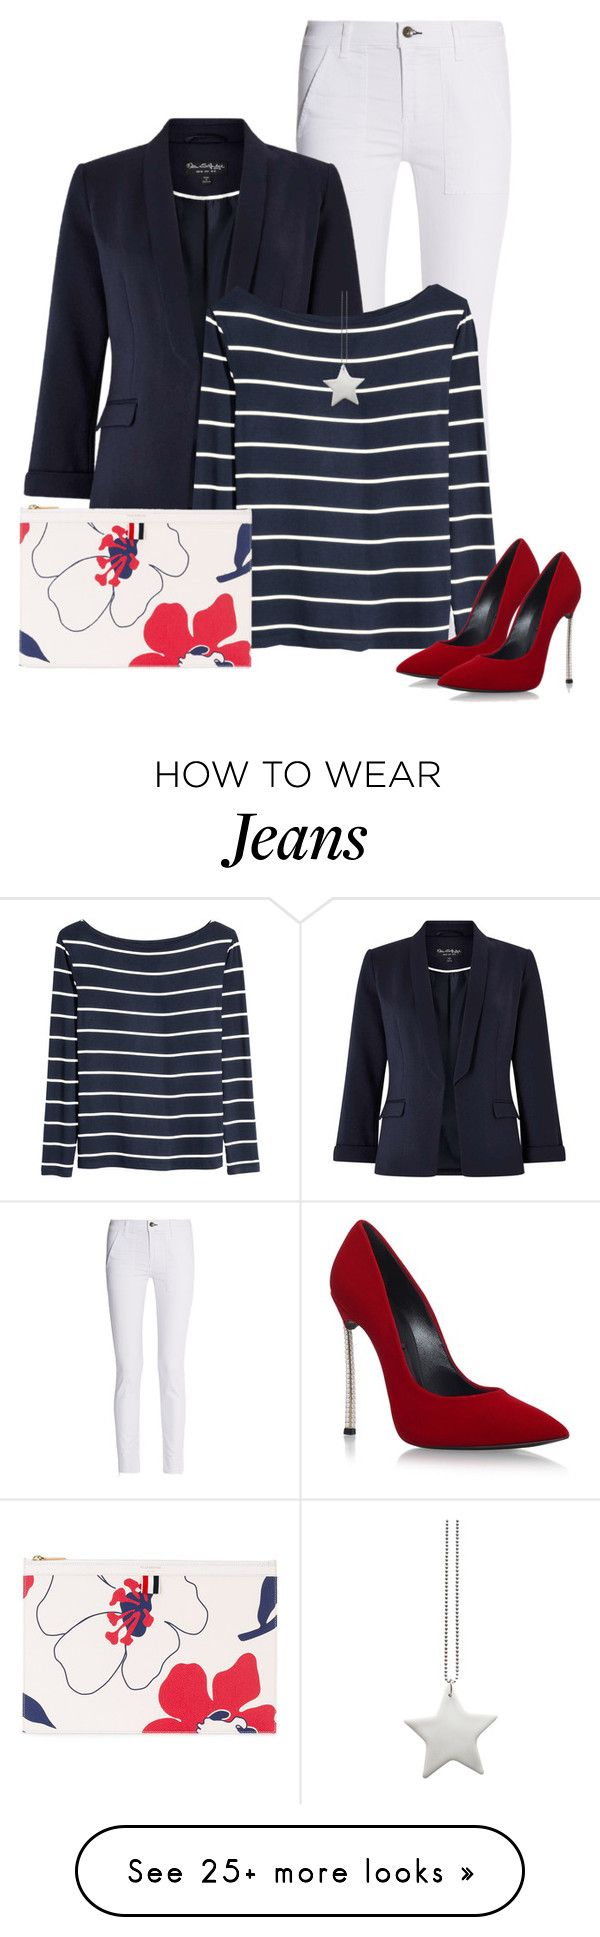 """Red, White, & Blue!"" by oxigenio on Polyvore featuring rag & bone, Miss Selfridge, H&M, design *by Imre Bergmann, Casadei and Thom Browne"